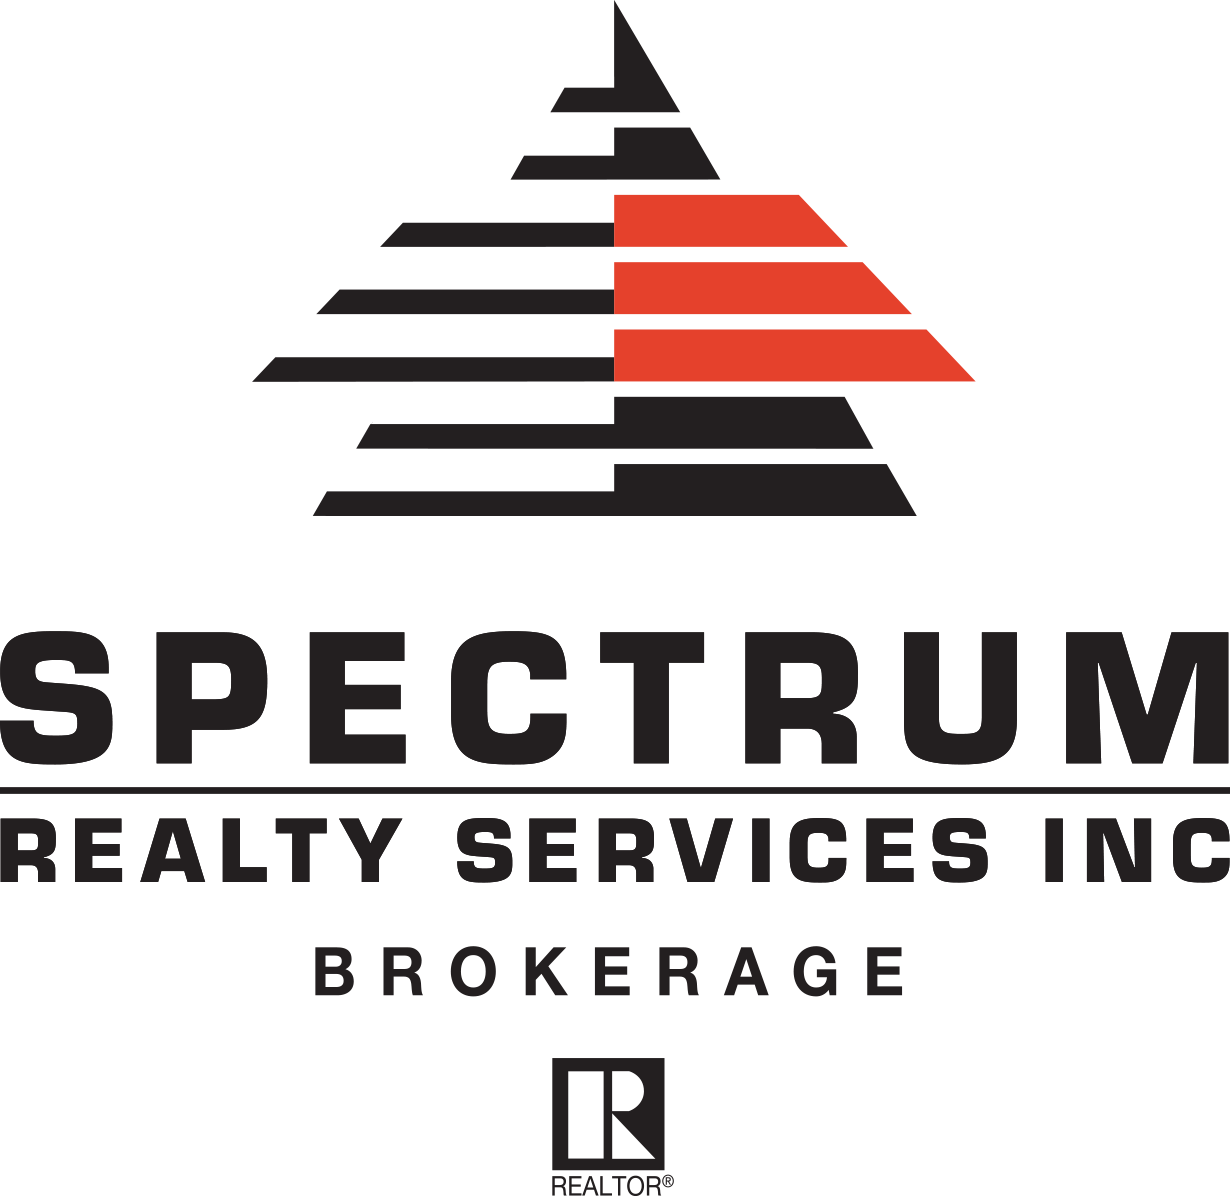 spectrum realty services brokerage